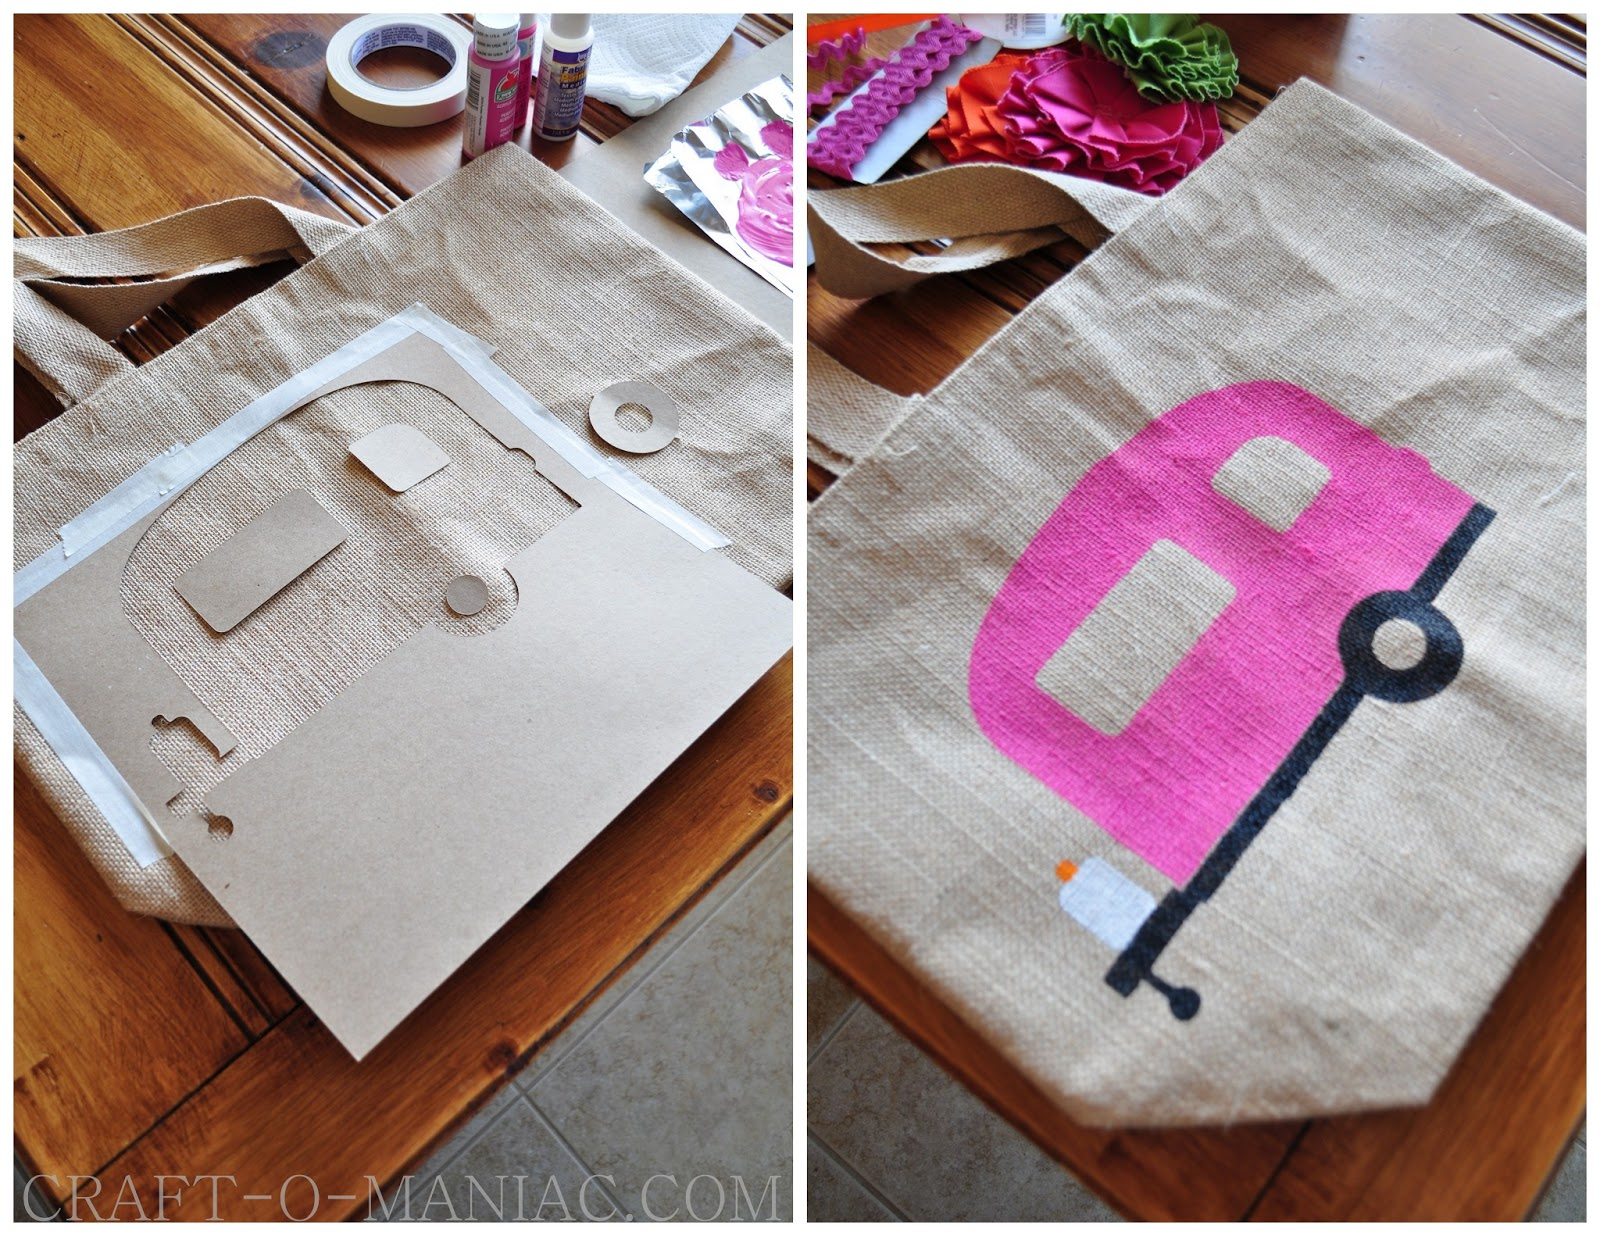 Diy gone glamping stenciled tote craft o maniac for Glamping ideas diy